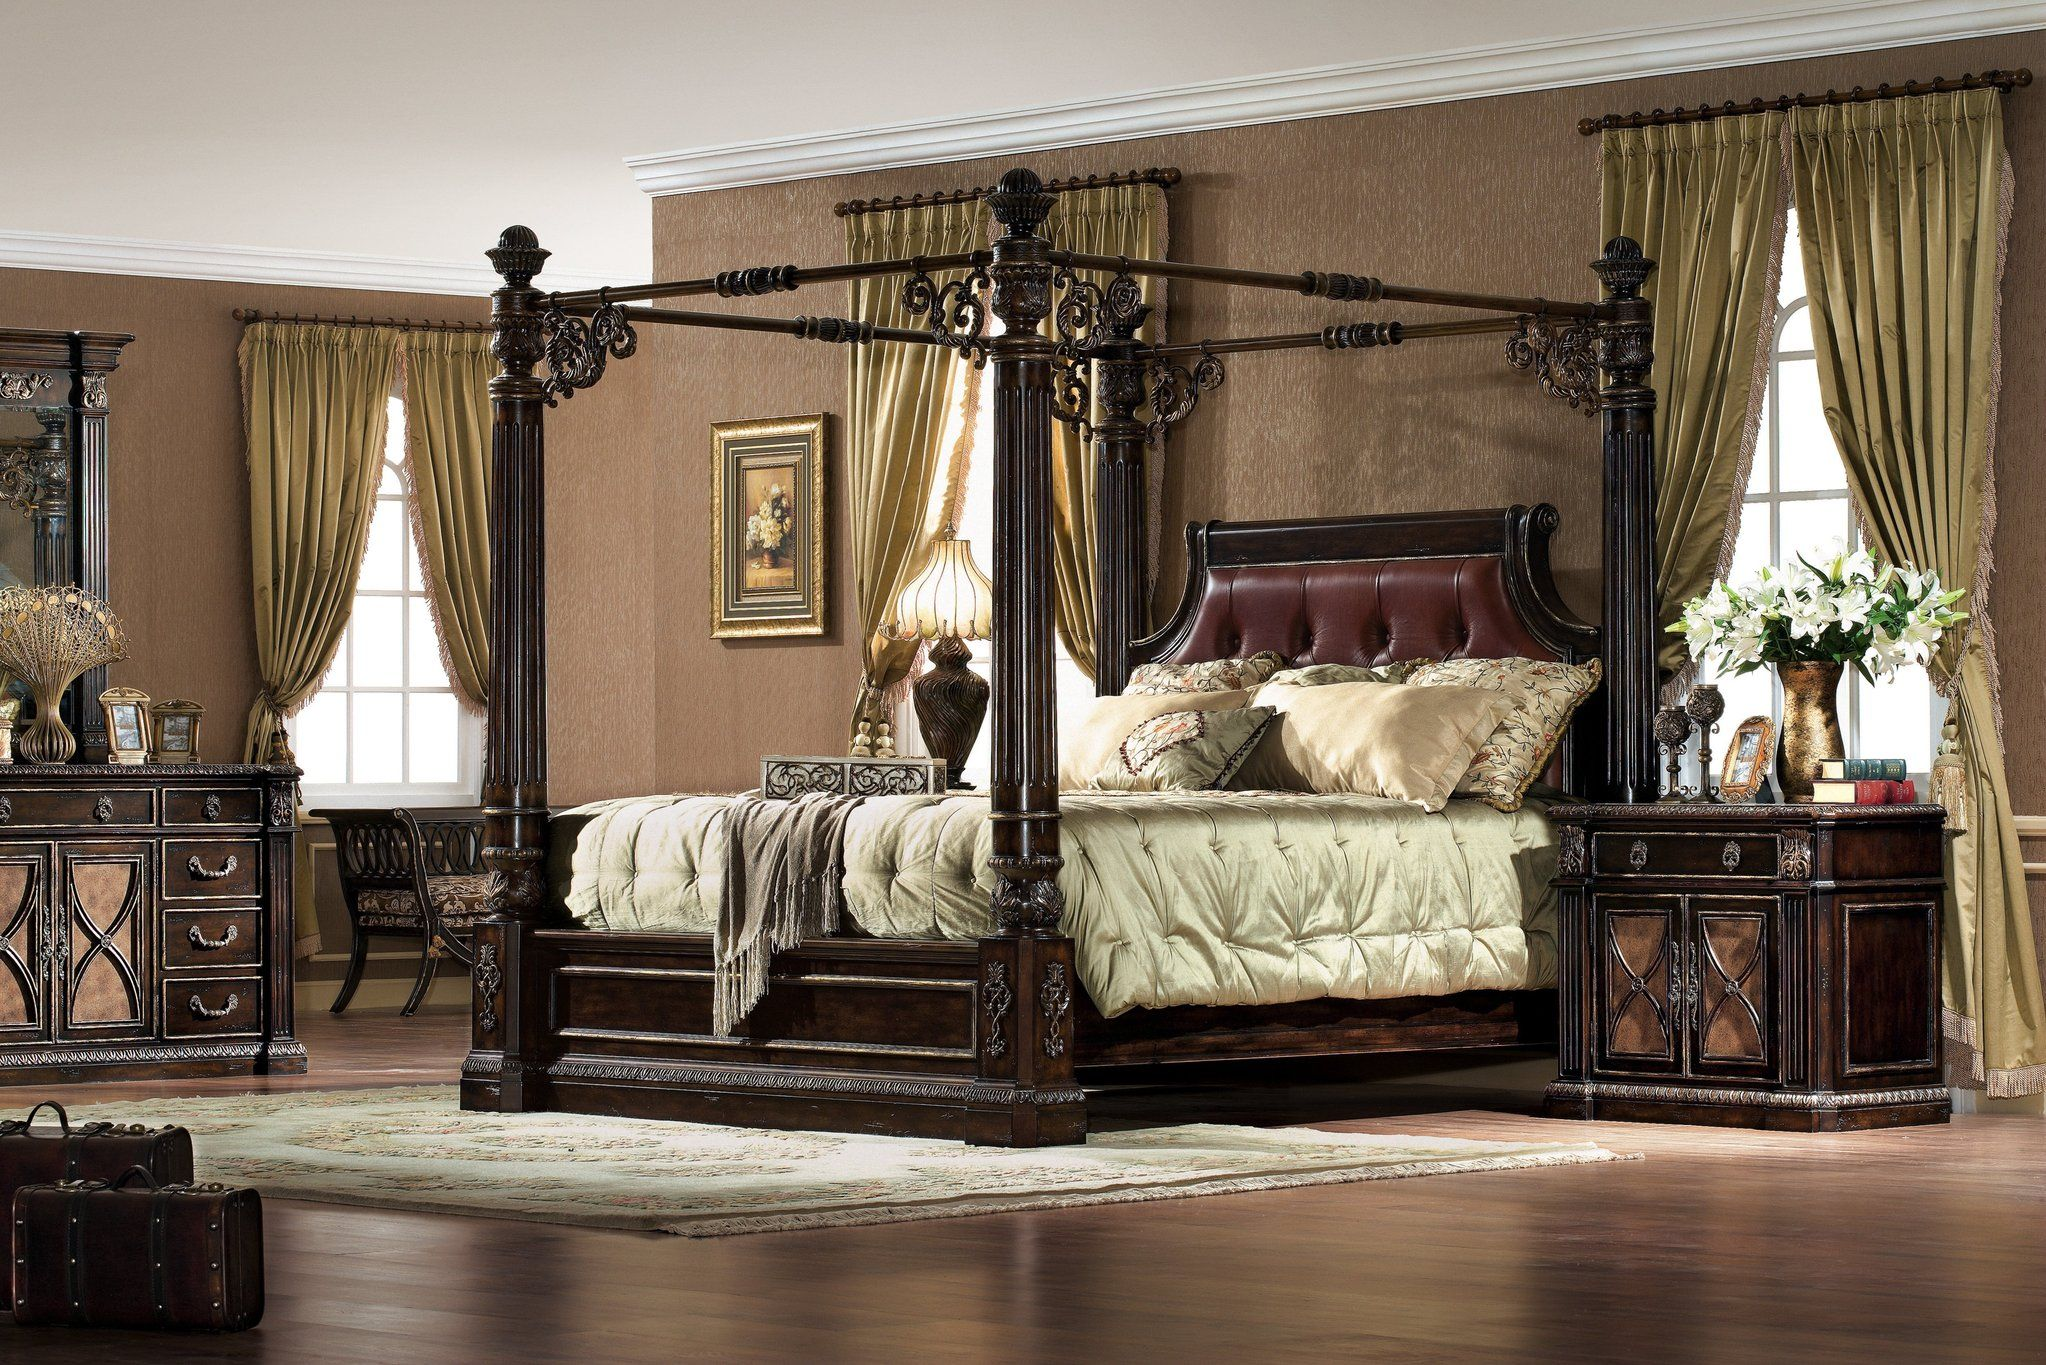 Antique Chestnut Carved King Size Canopy Bed W Leather In Home Garden Furniture Beds Mattresses